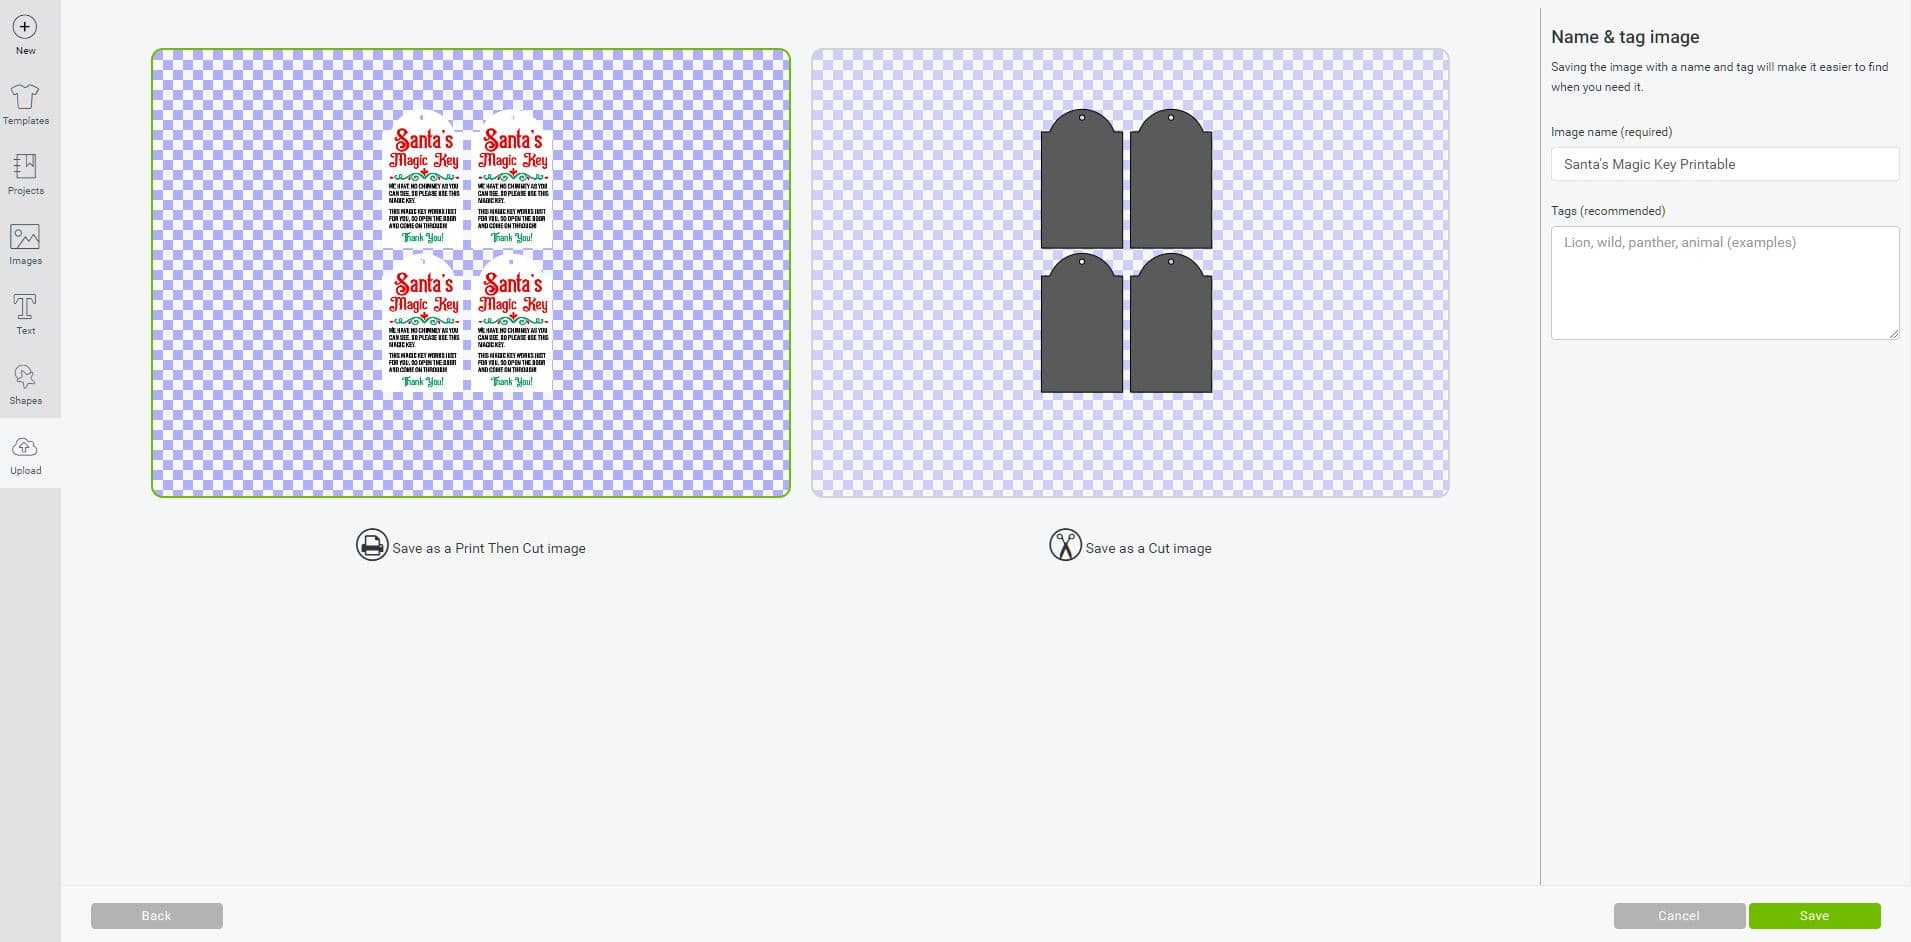 Cricut Design Space software screenshot of tags being saved as a Print Then Cut image